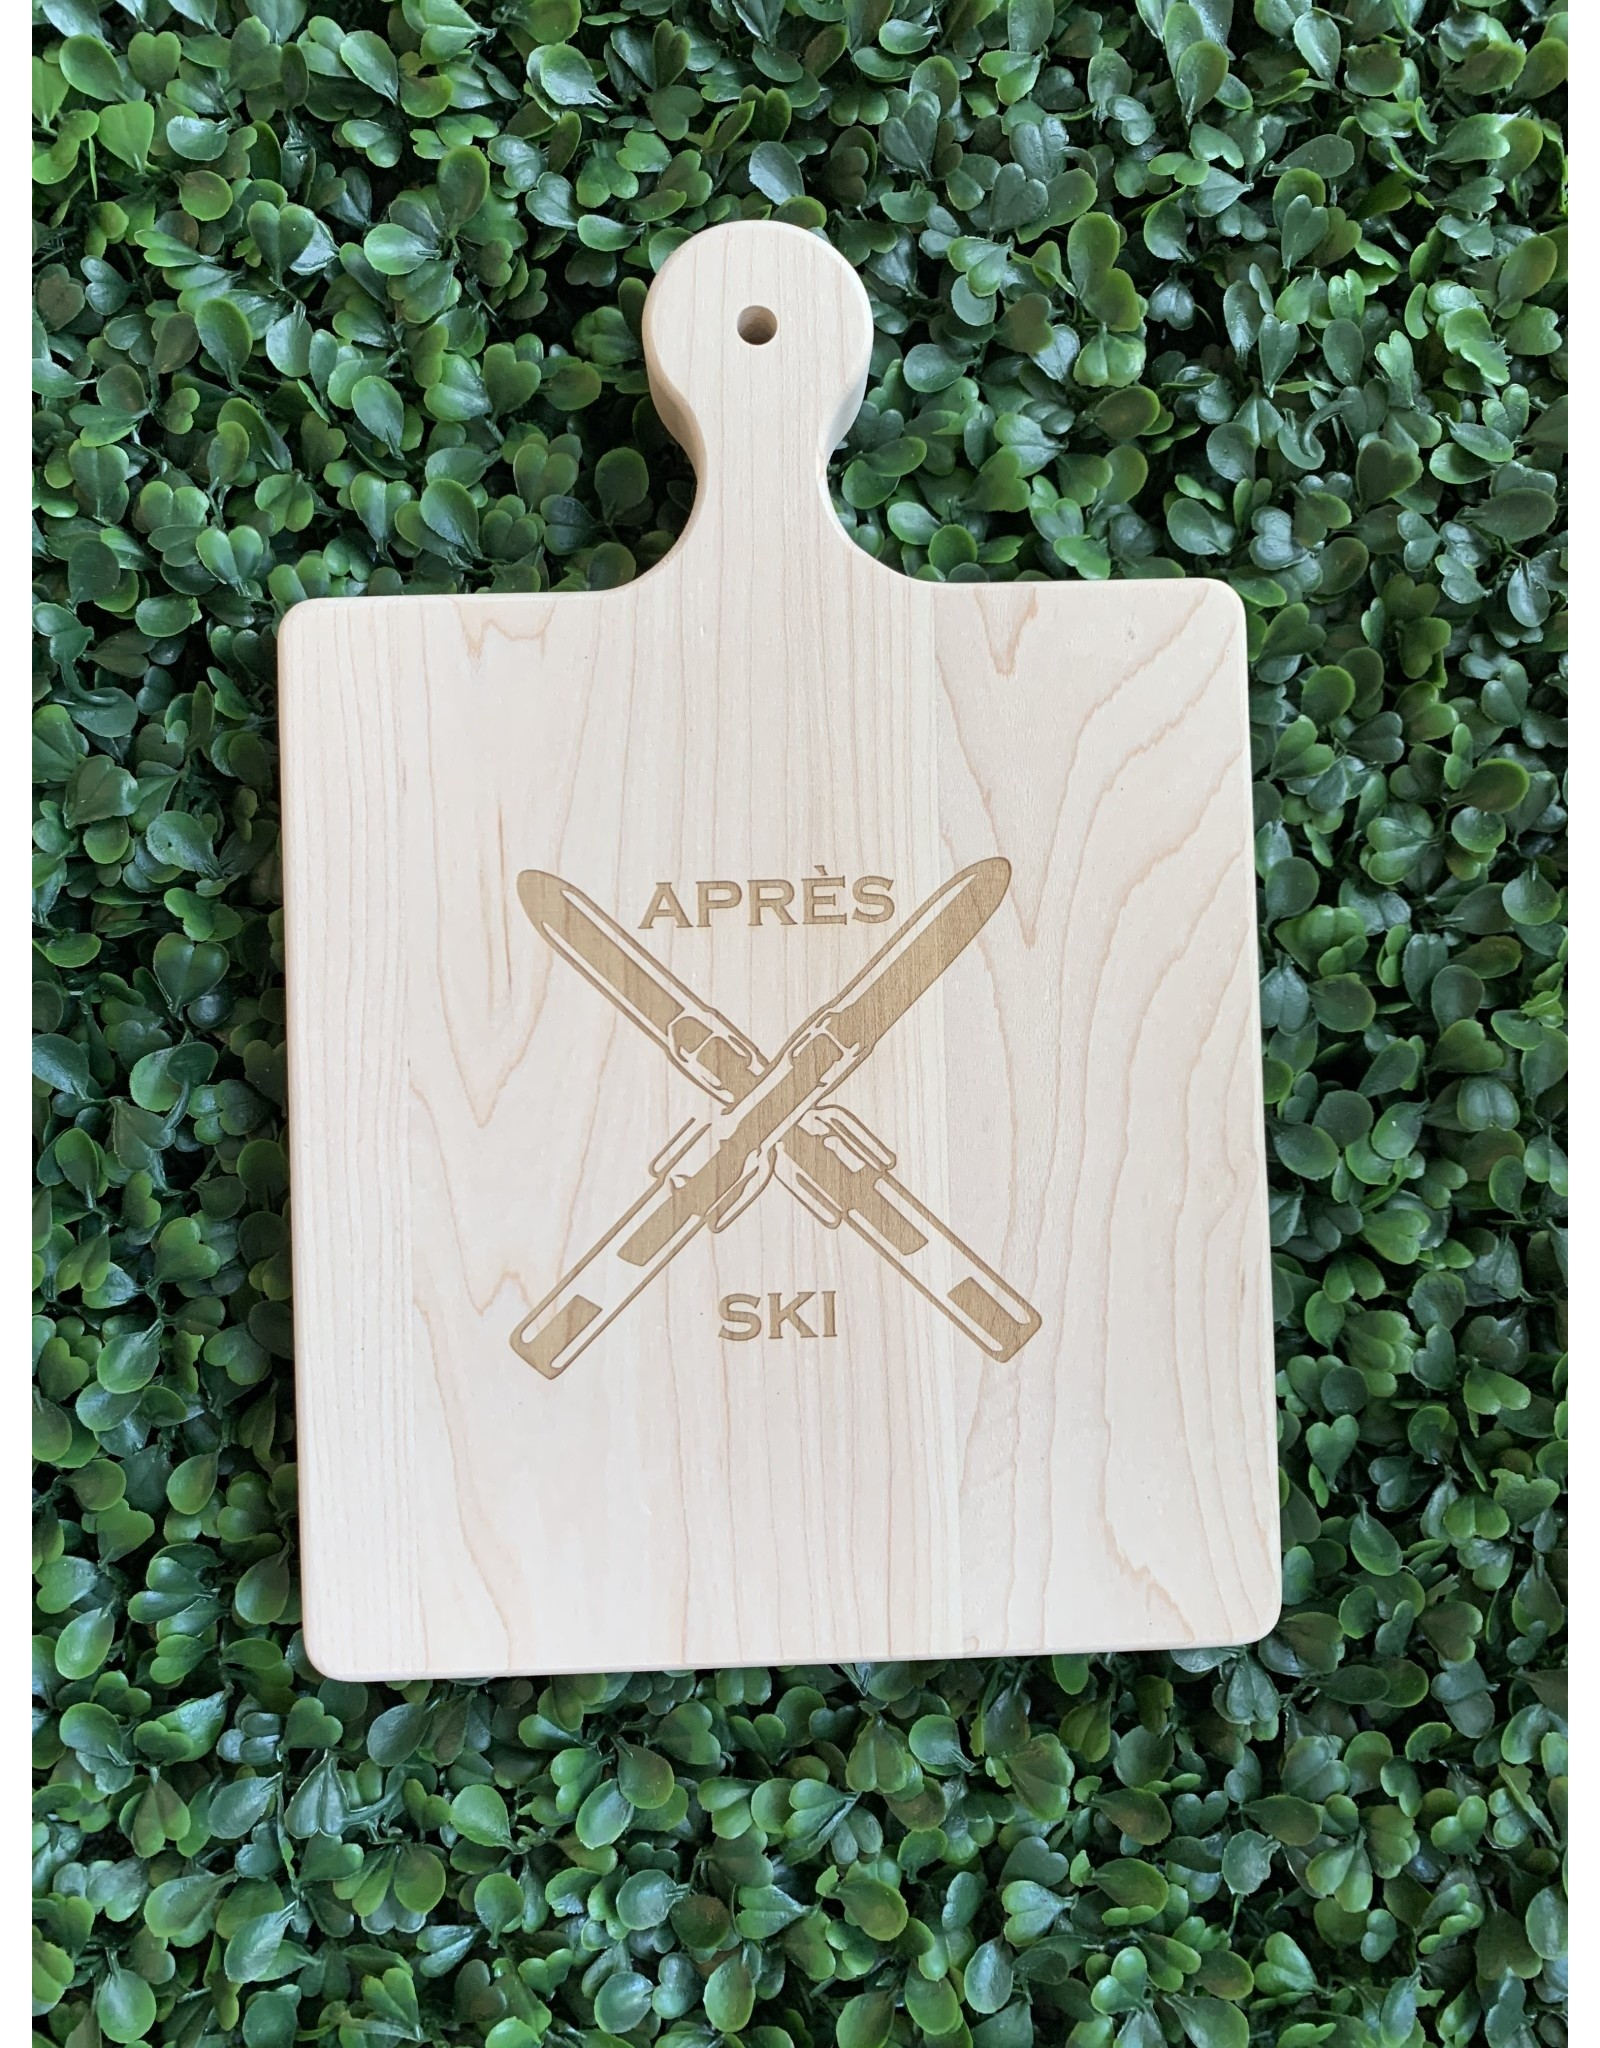 Maple Leaf at Home Apres Ski 9x6 Maple Handled Board